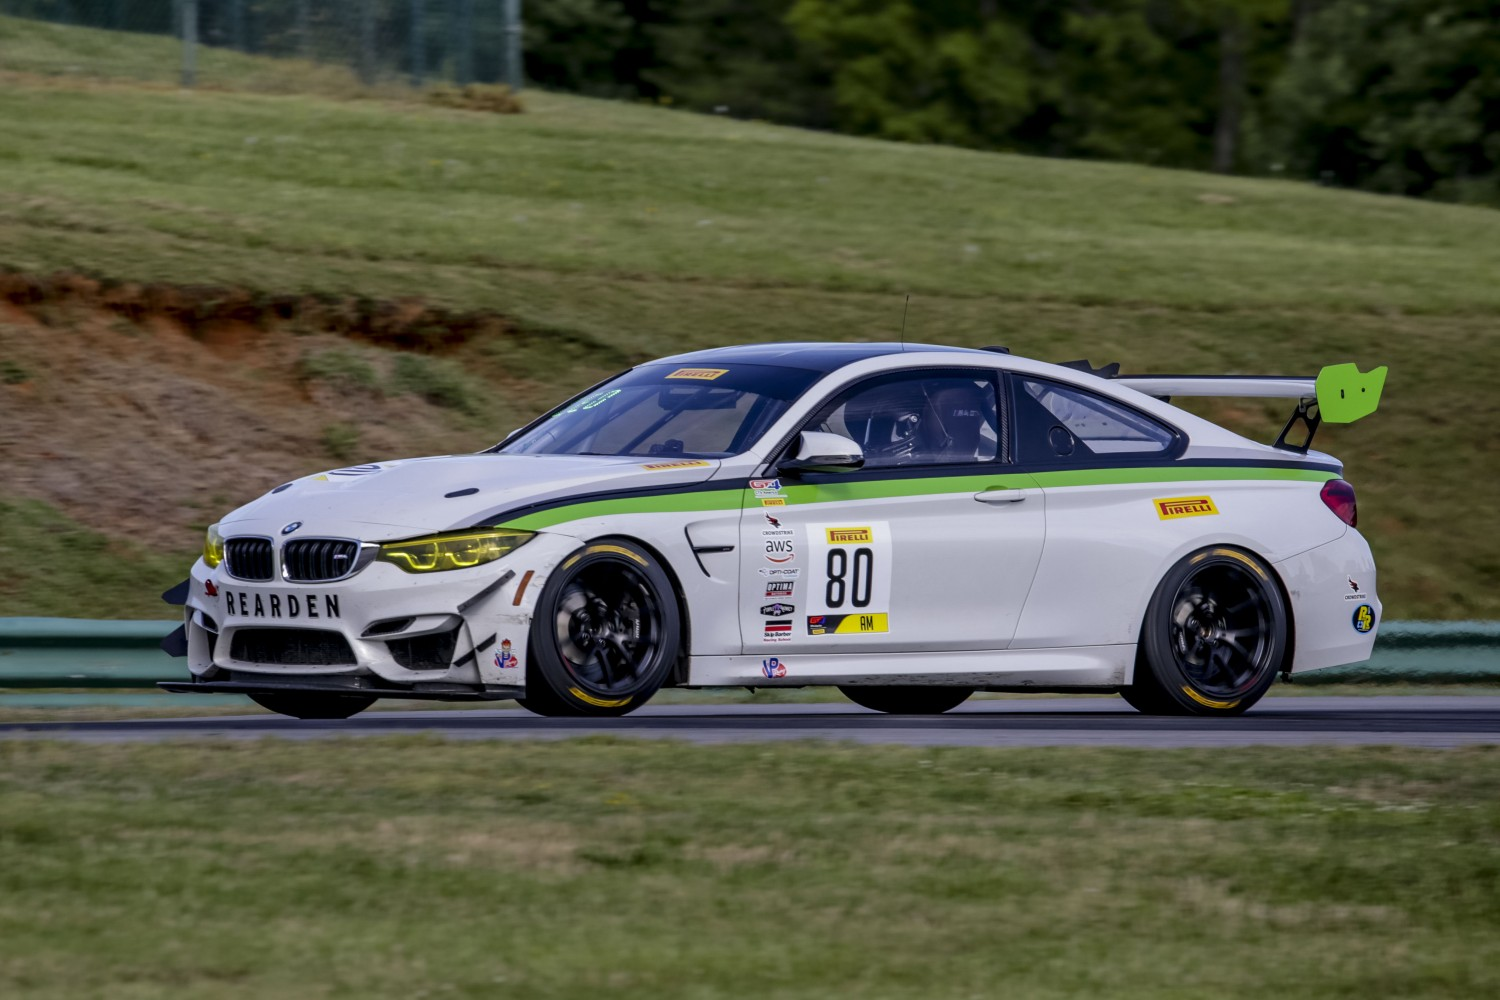 #80 BMW M4 GT4  of Dmitri Novikov    VIRginia International Raceway, Alton VA                                                   | Brian Cleary/SRO